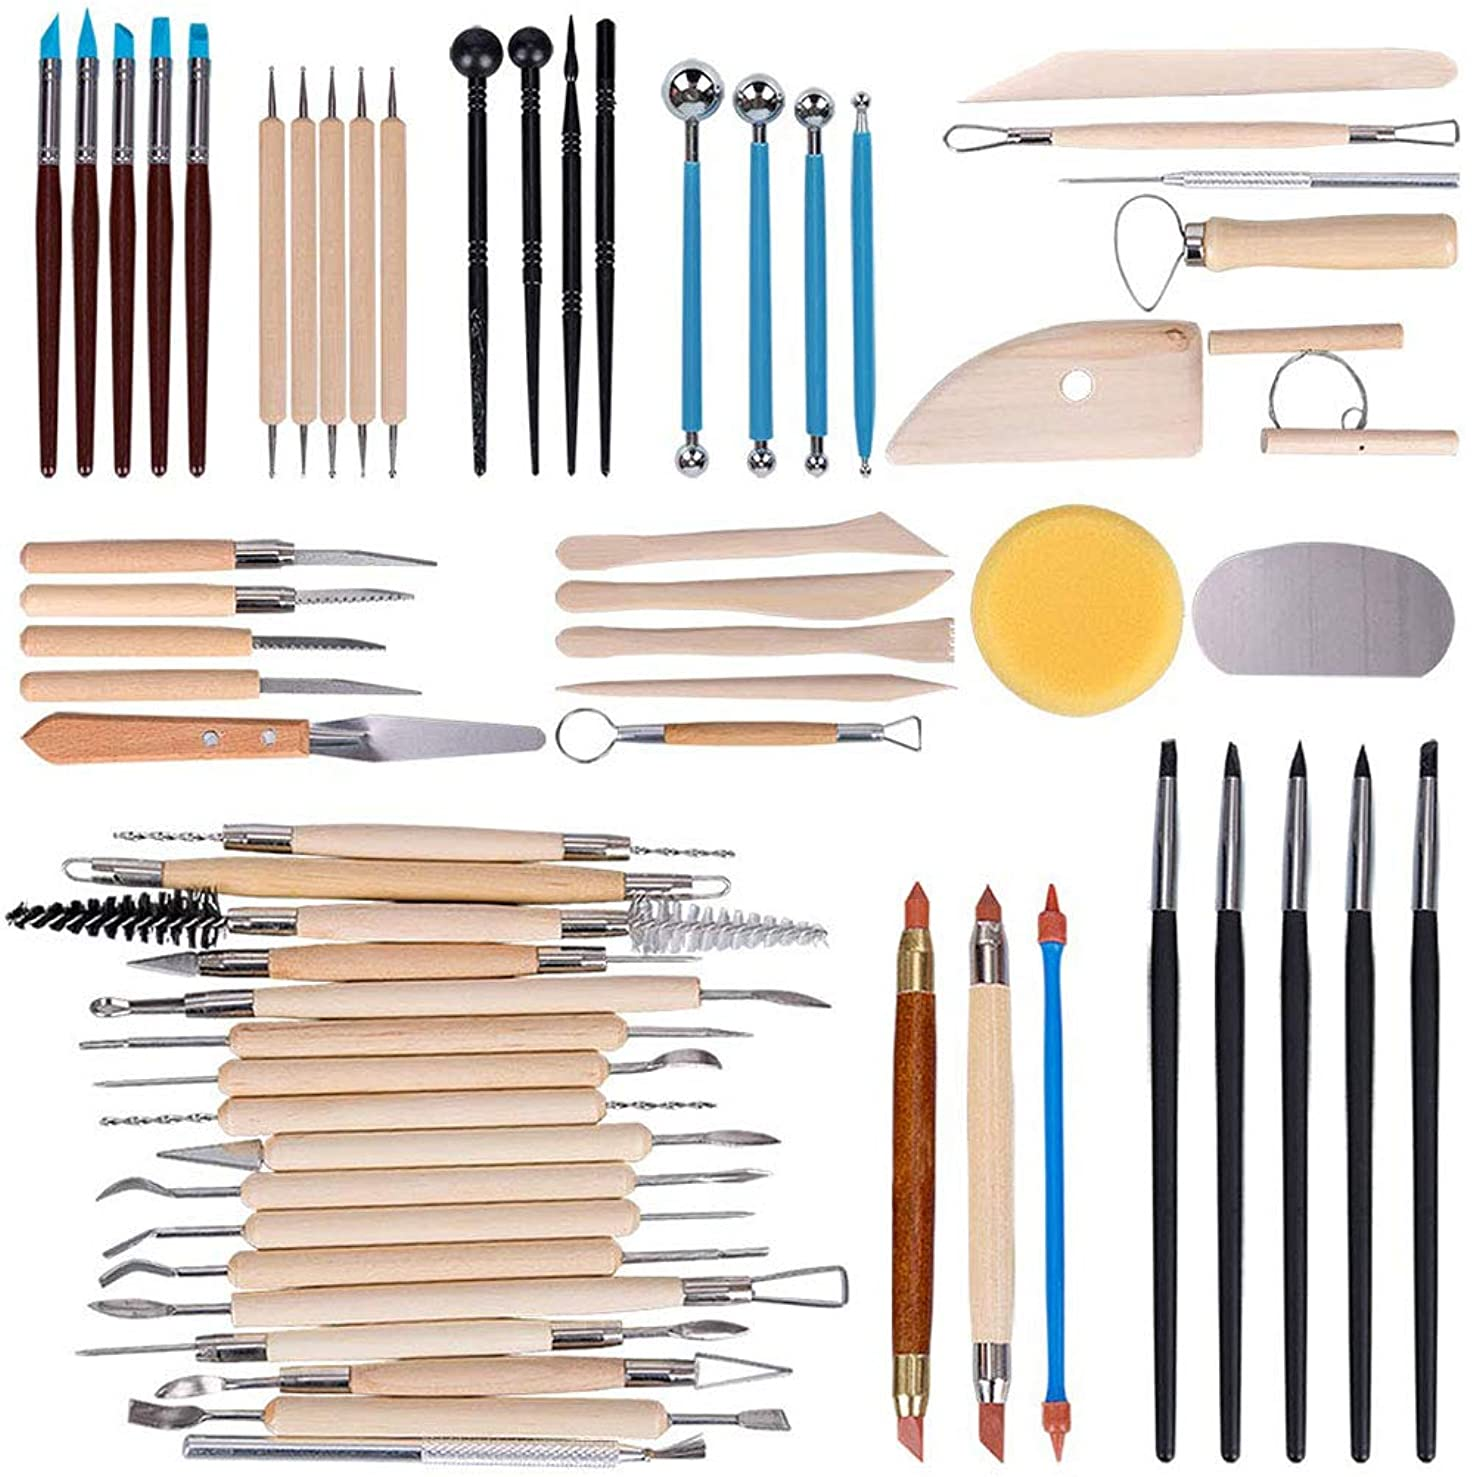 Buyra 61 Pcs Ceramic Clay Tools Set, Modeling Clay Sculpting Tools Kits, Polymer Clay Tools, Pottery Tools for Beginners Professionals Arts Crafts, Wood and Steel, Home School Use